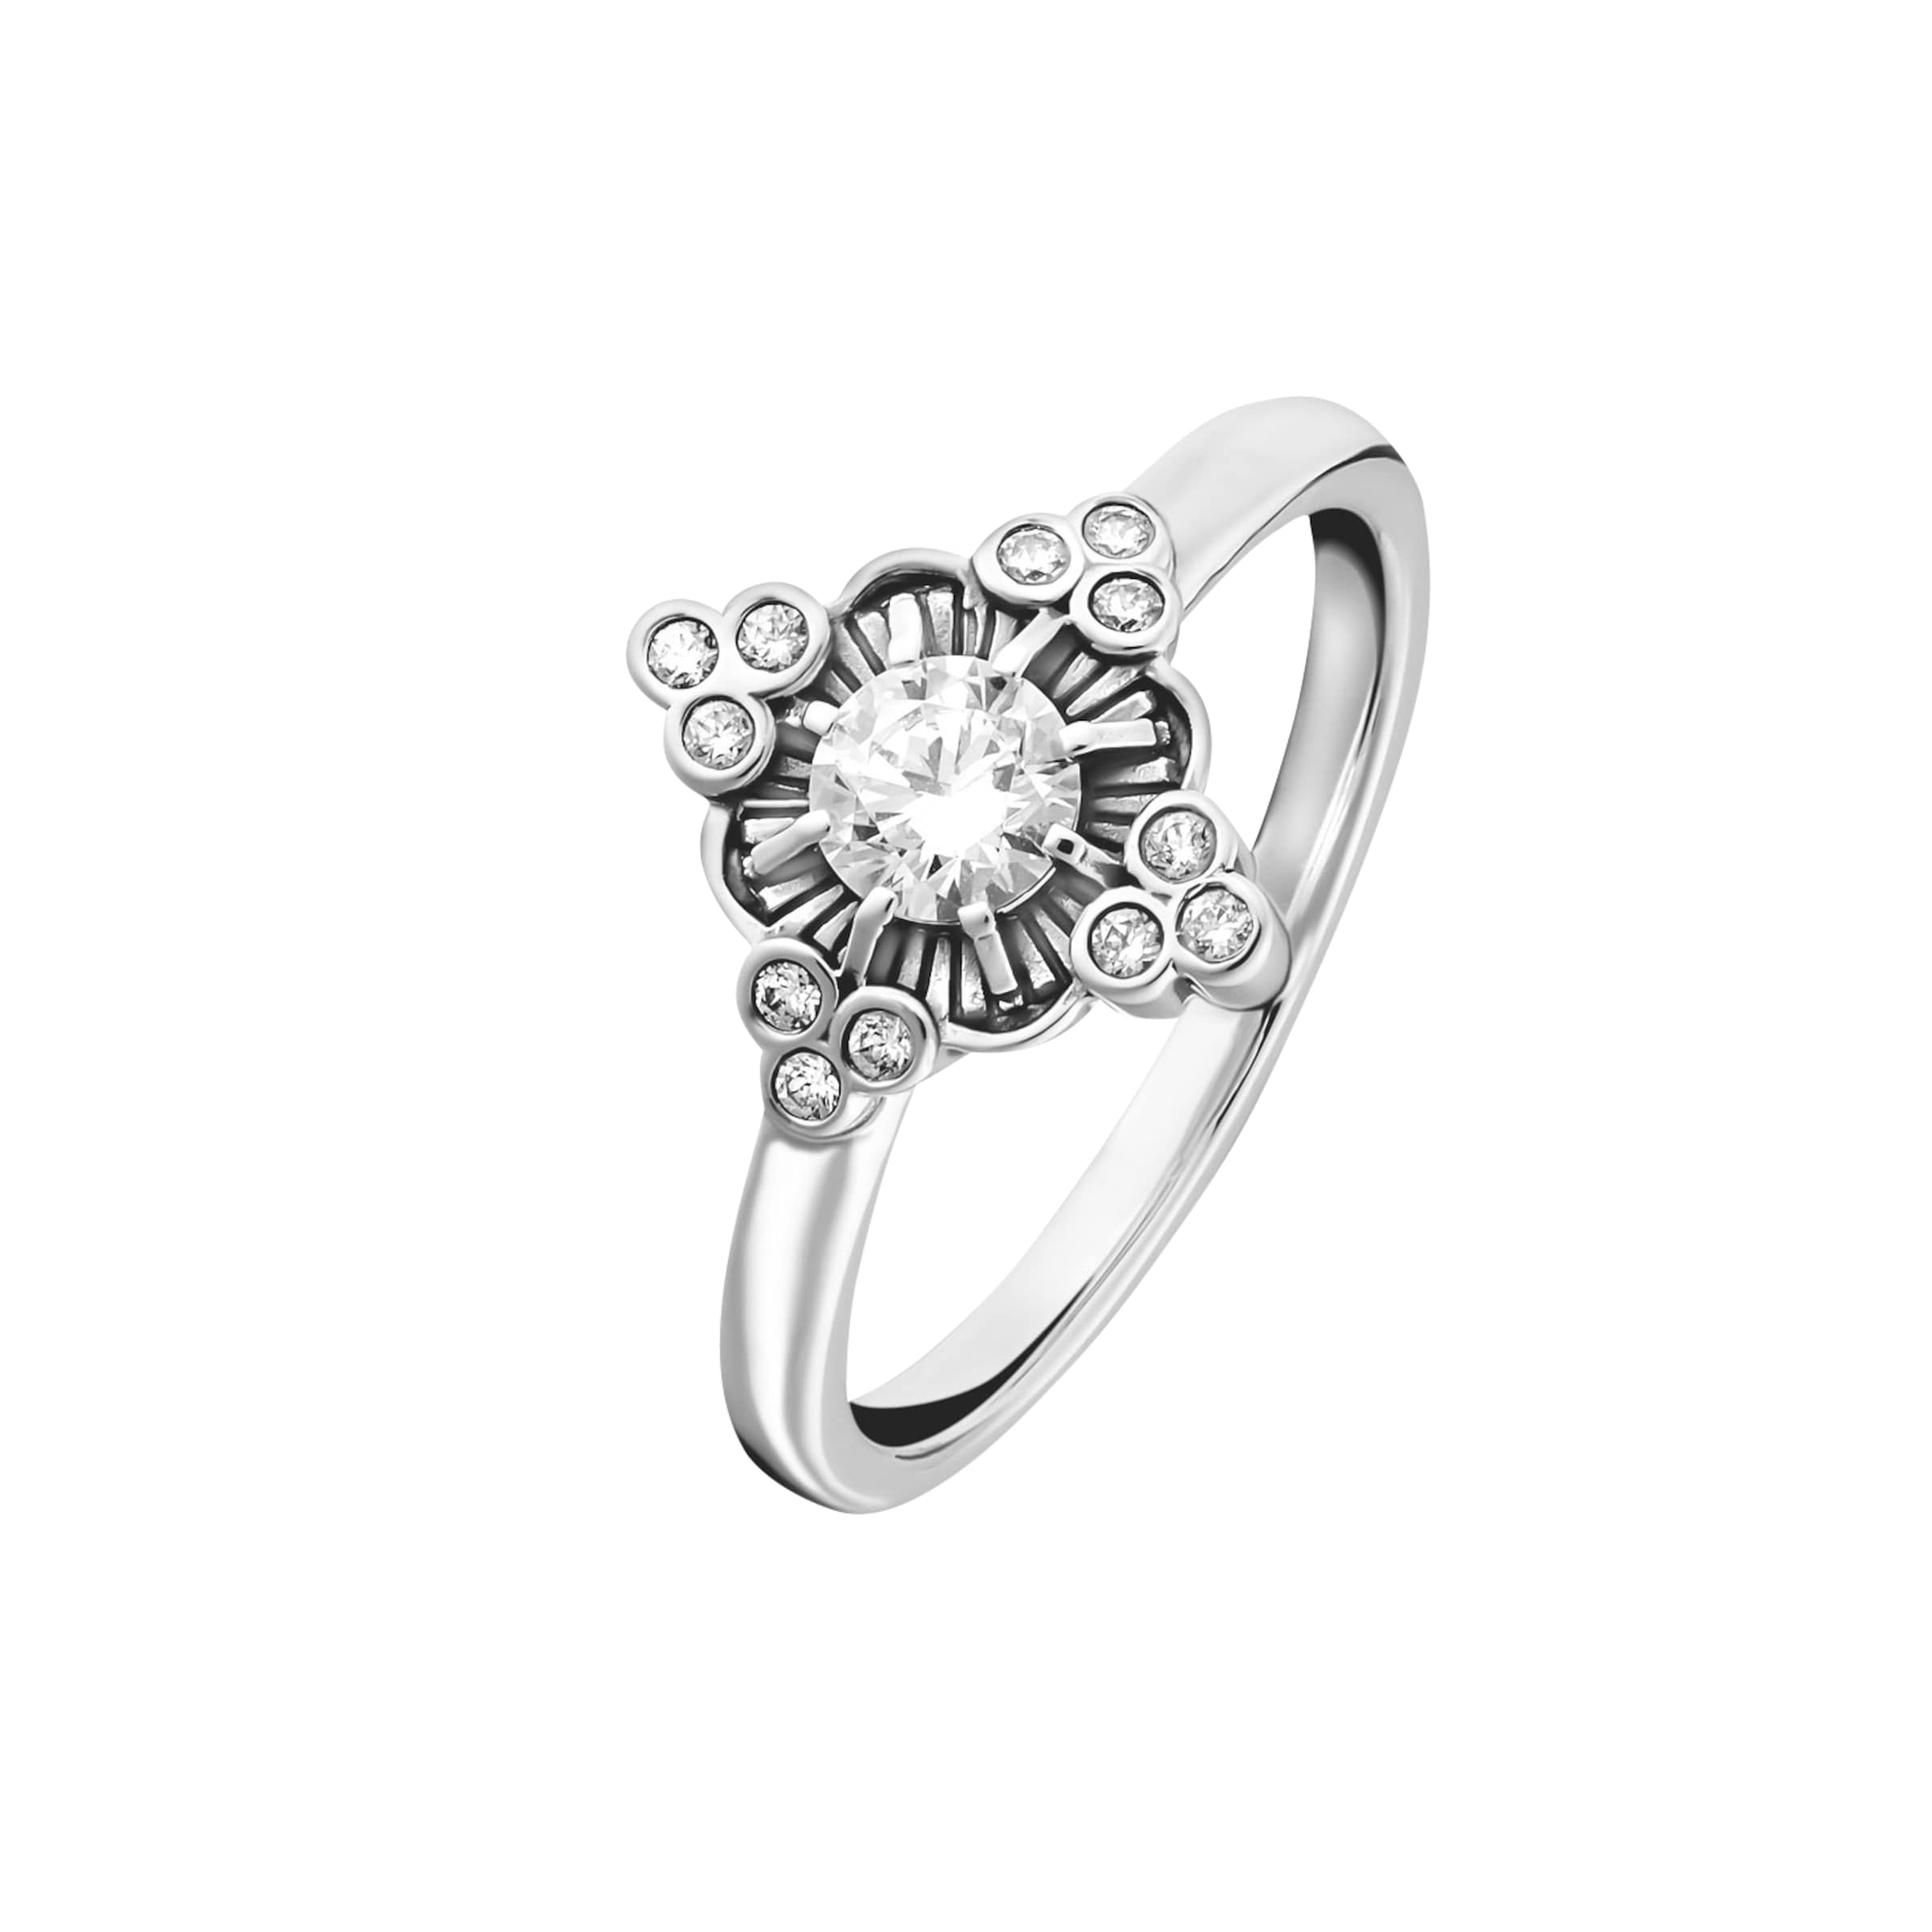 Ring 'royalty In Silber Weiss' Thomas Sabo xrBedoWC